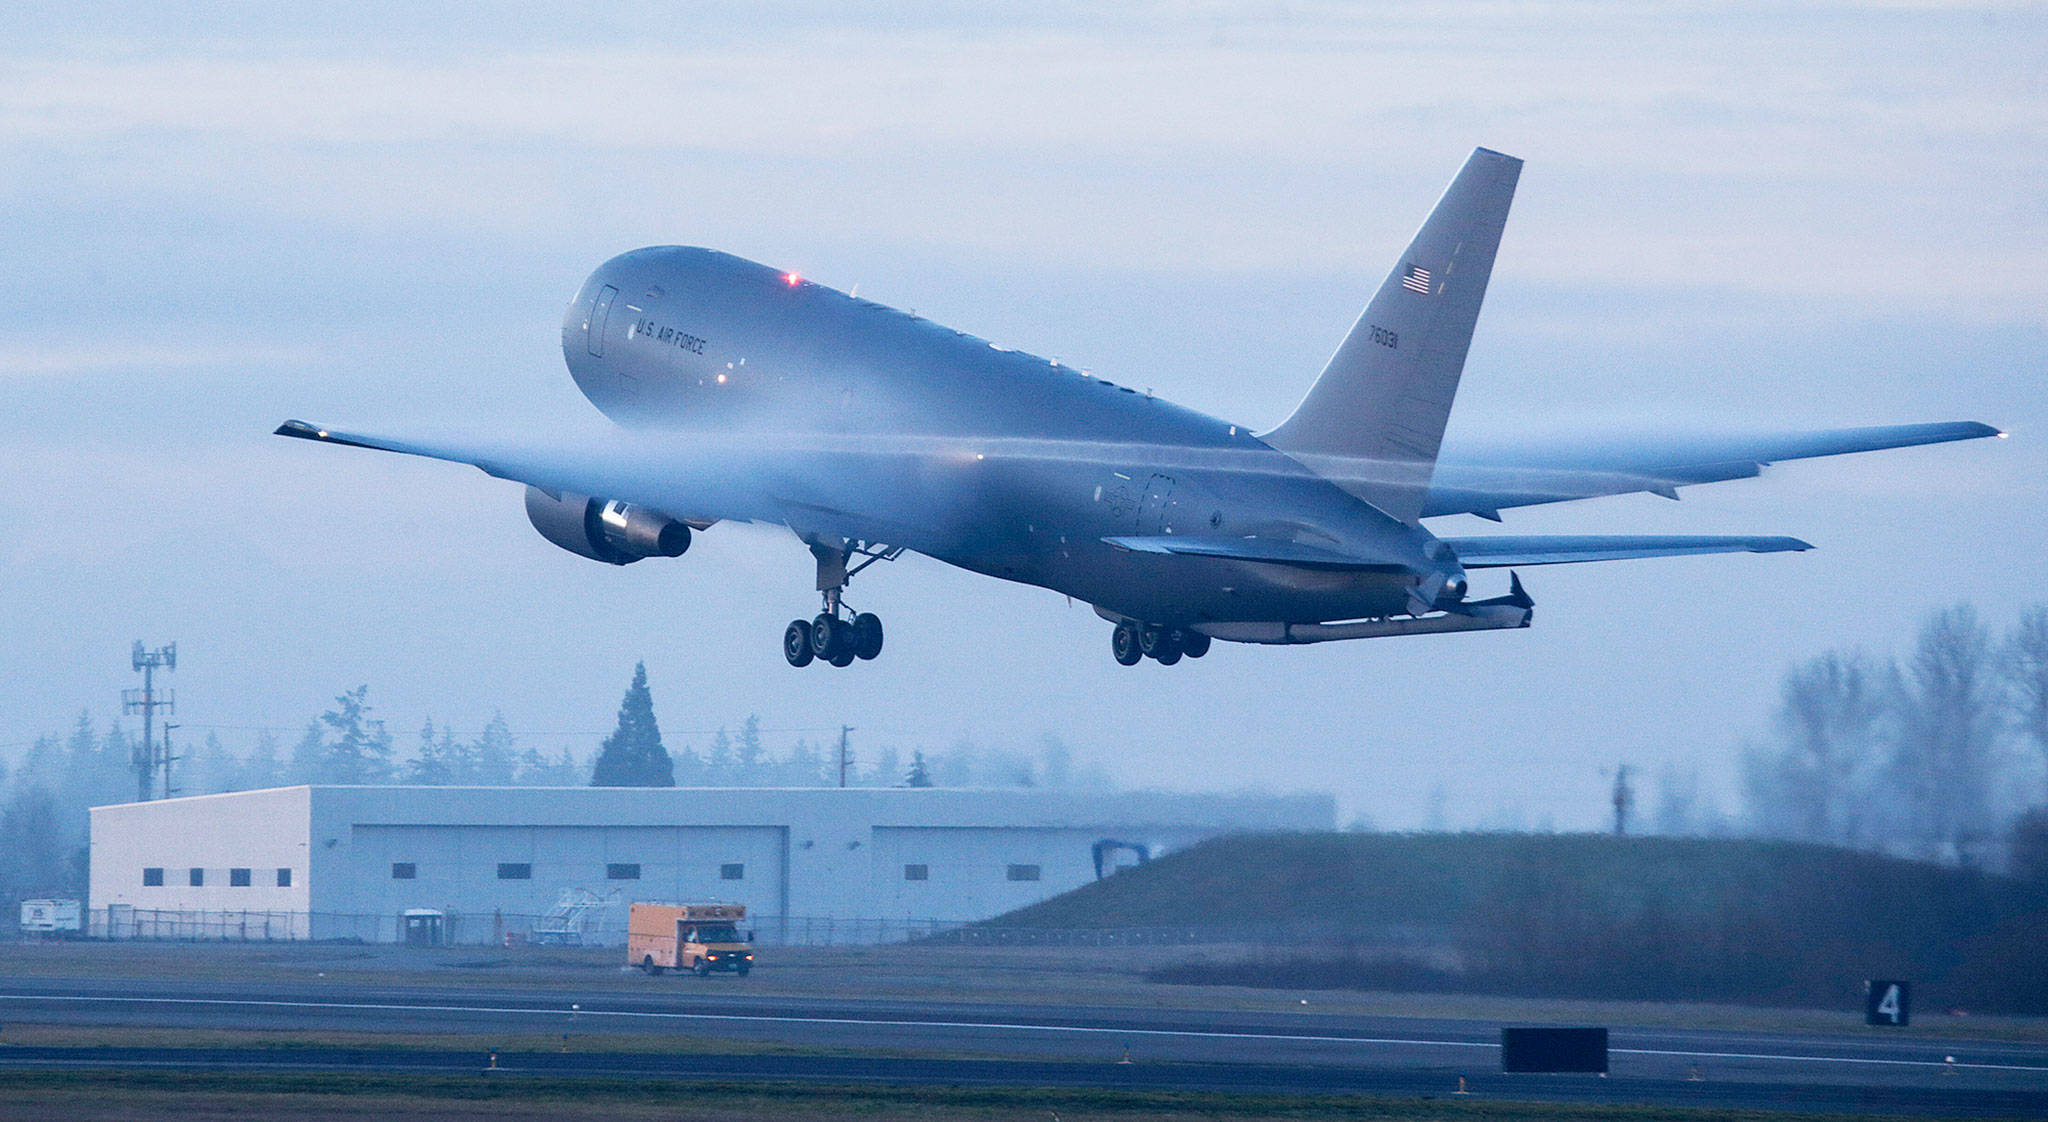 Condensation forms off the wings of a Boeing KC-46 Pegasus tanker taking off from Paine Field in Everett on Jan. 25. The U.S. Air Force has grown alarmed with the amount of trash, tools and other items that were being left behind in new KC-46 tanker planes the company was delivering. (Andy Bronson / The Herald)